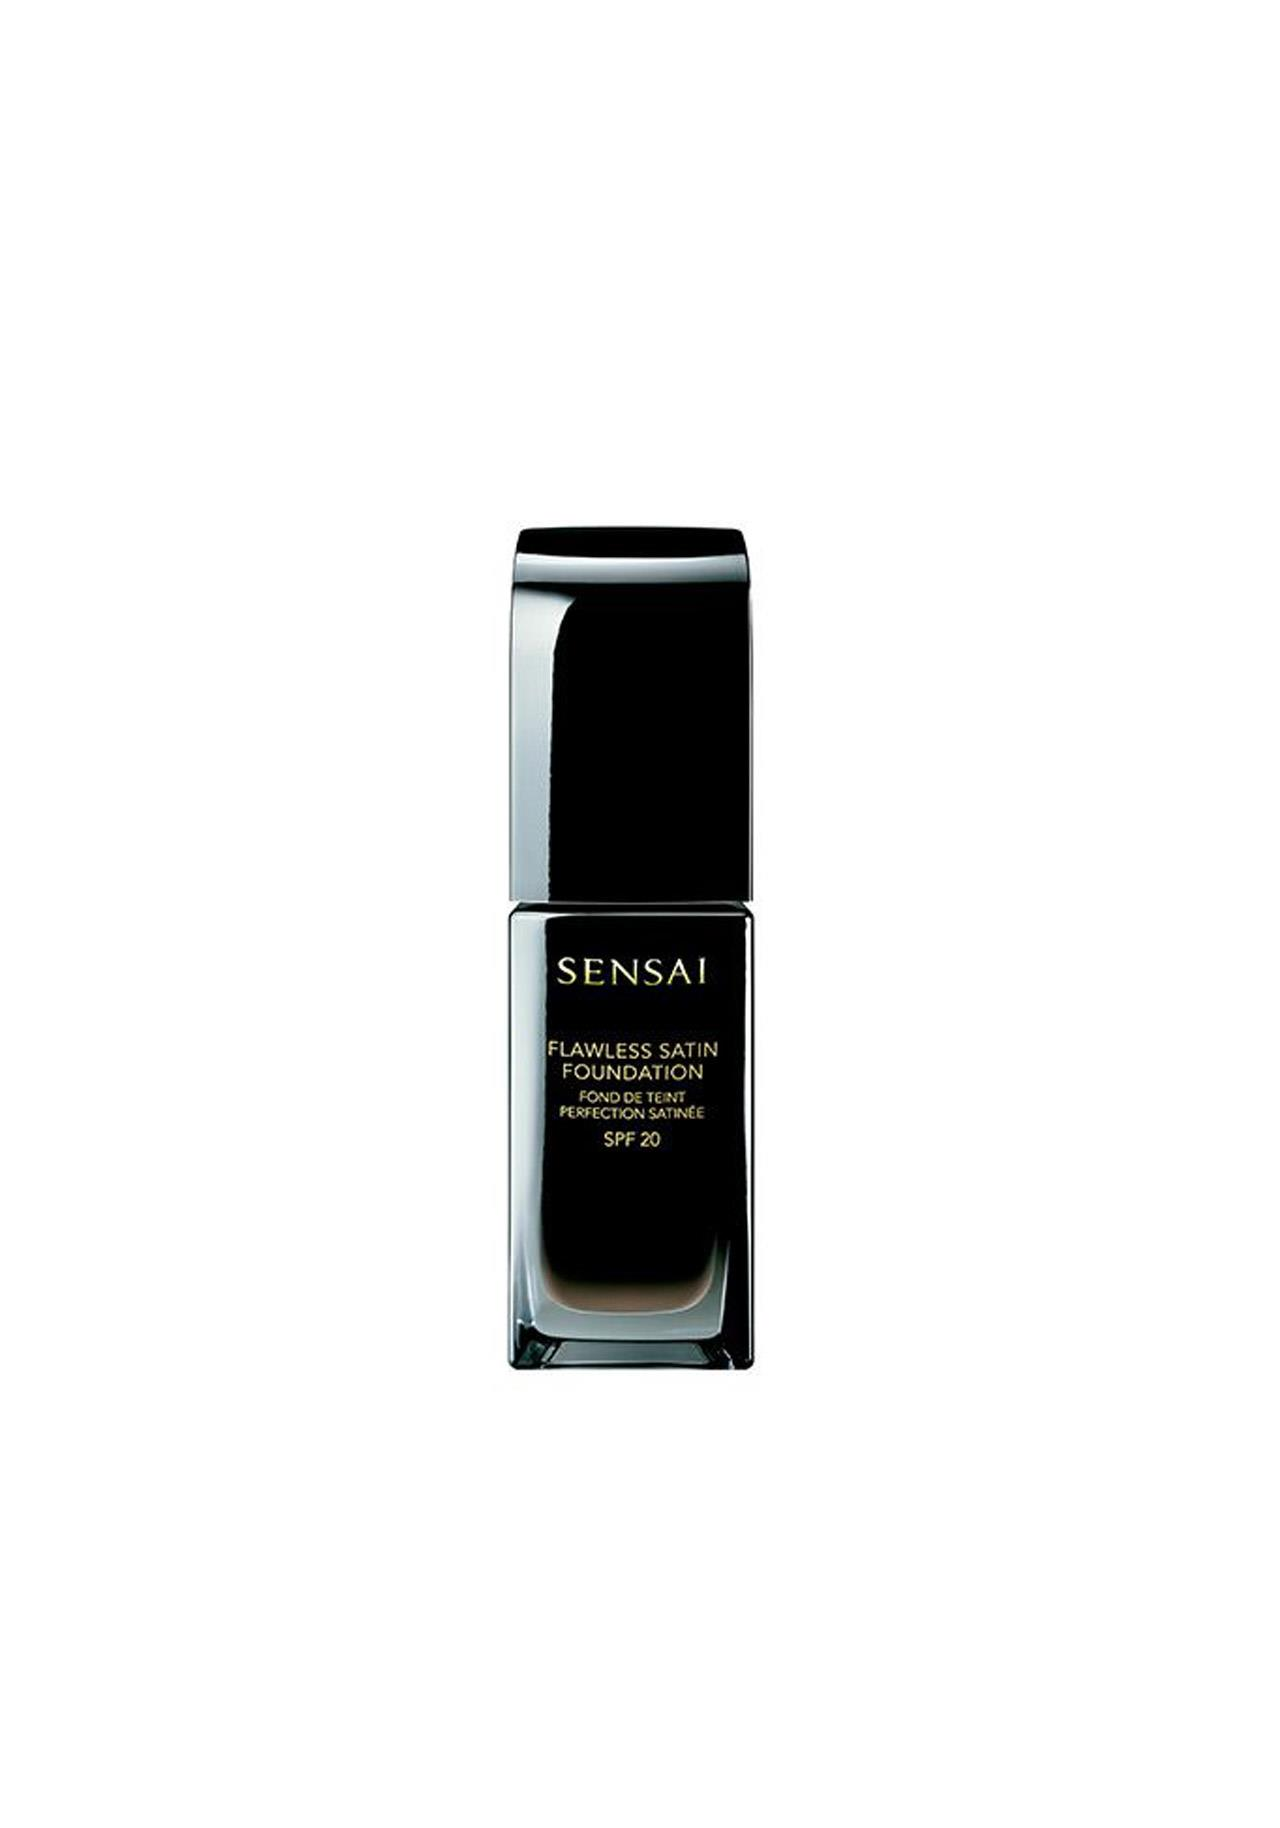 bases de maquillaje antiedad Flawless Satin Foundation de Sensai, 56€